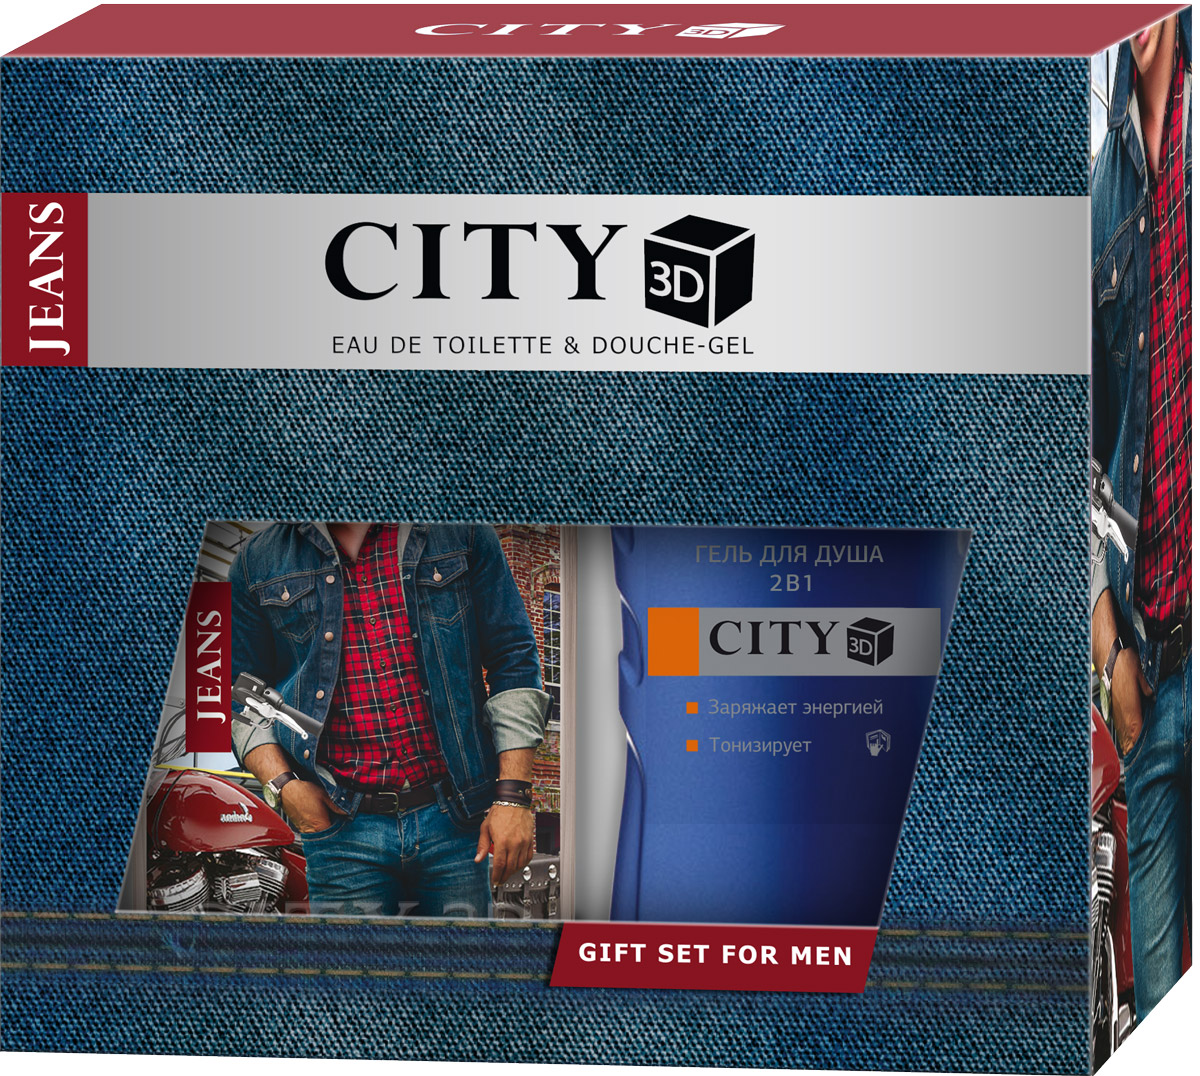 City Parfum Парфюмированный набор: City 3D Jeans Original Туалетная вода, 90 мл + Гель для душа, 150 мл 3d wall murals wallpaper kids dining room wallpaper city mural wall papers home decor 3d glitter wallpaper roll papel de parede